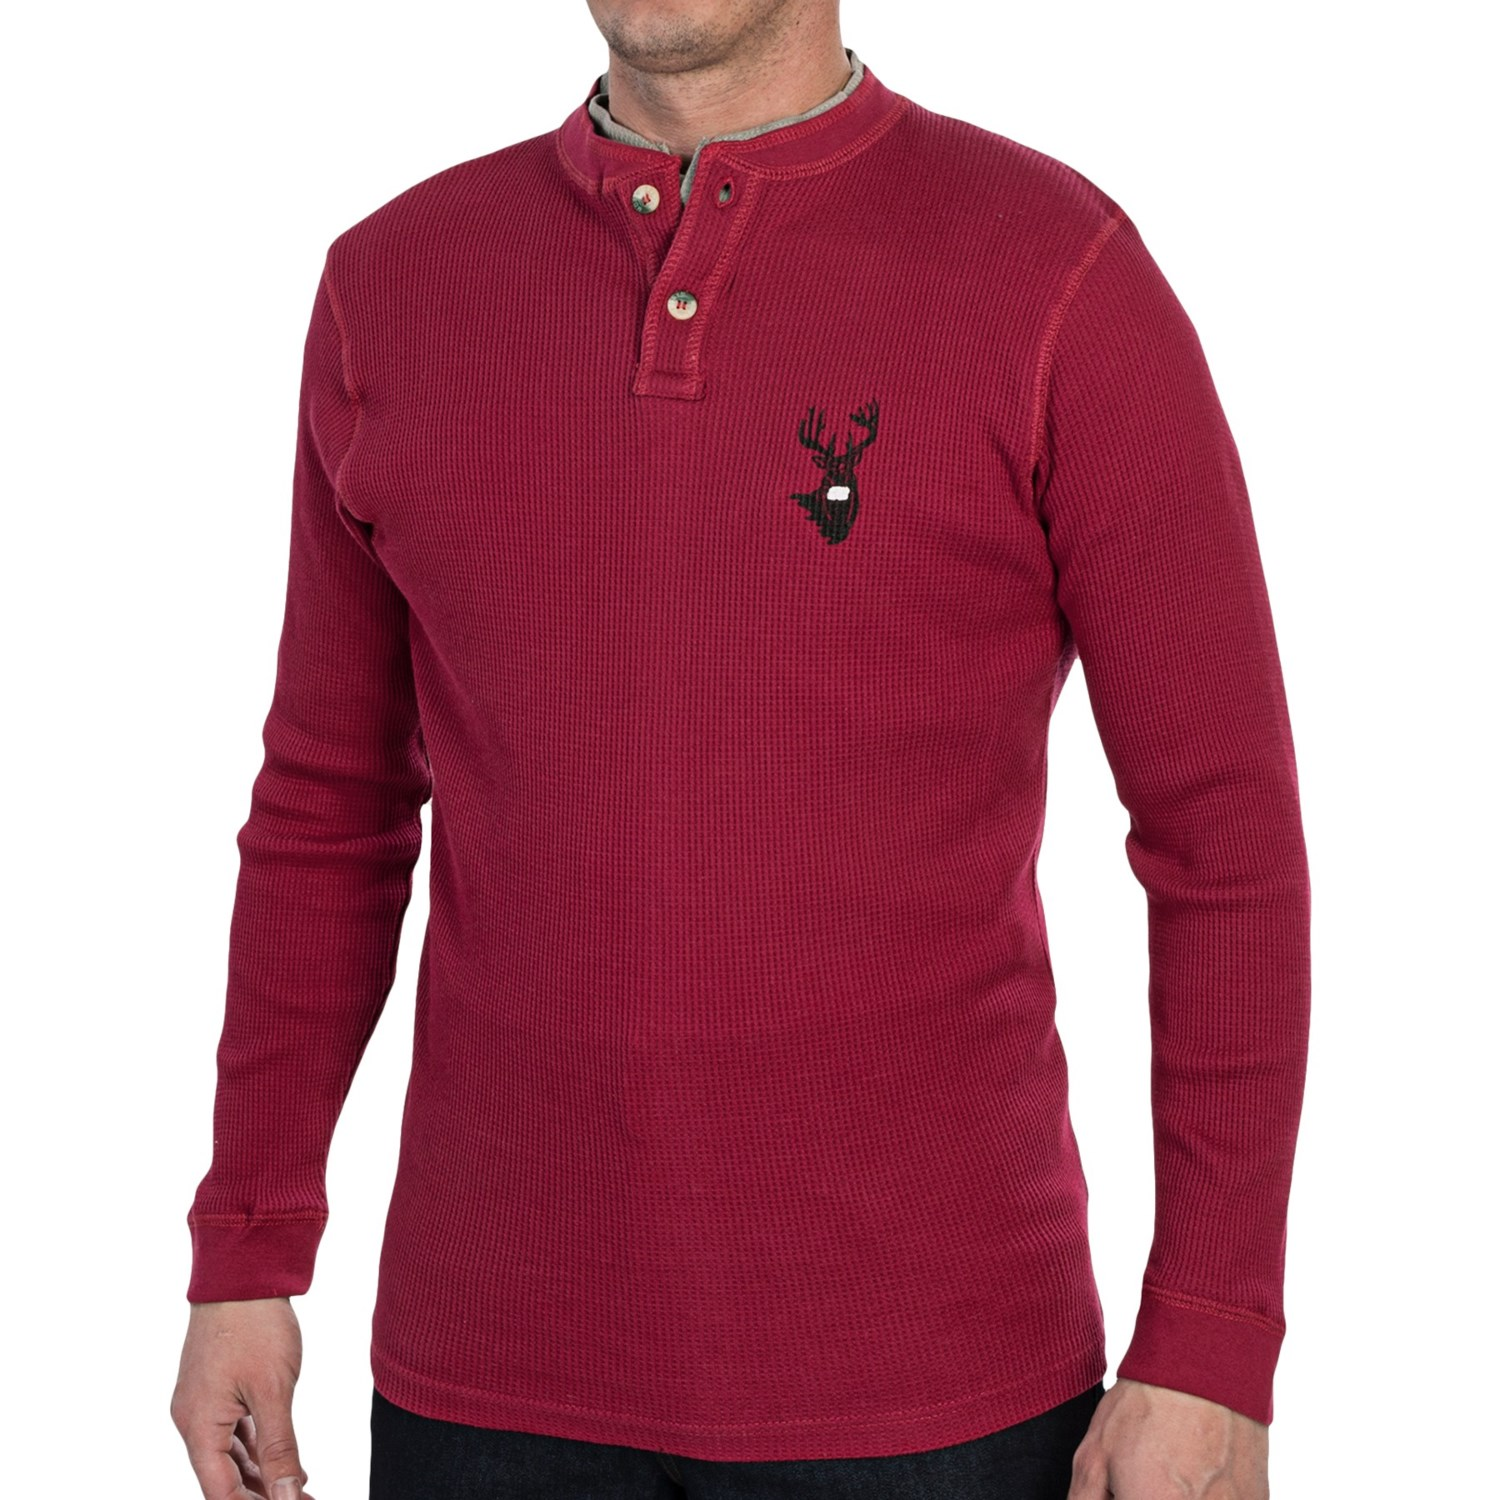 Dual neck thermal henley shirt for men 6859m save 77 for Men s thermal henley long sleeve shirts